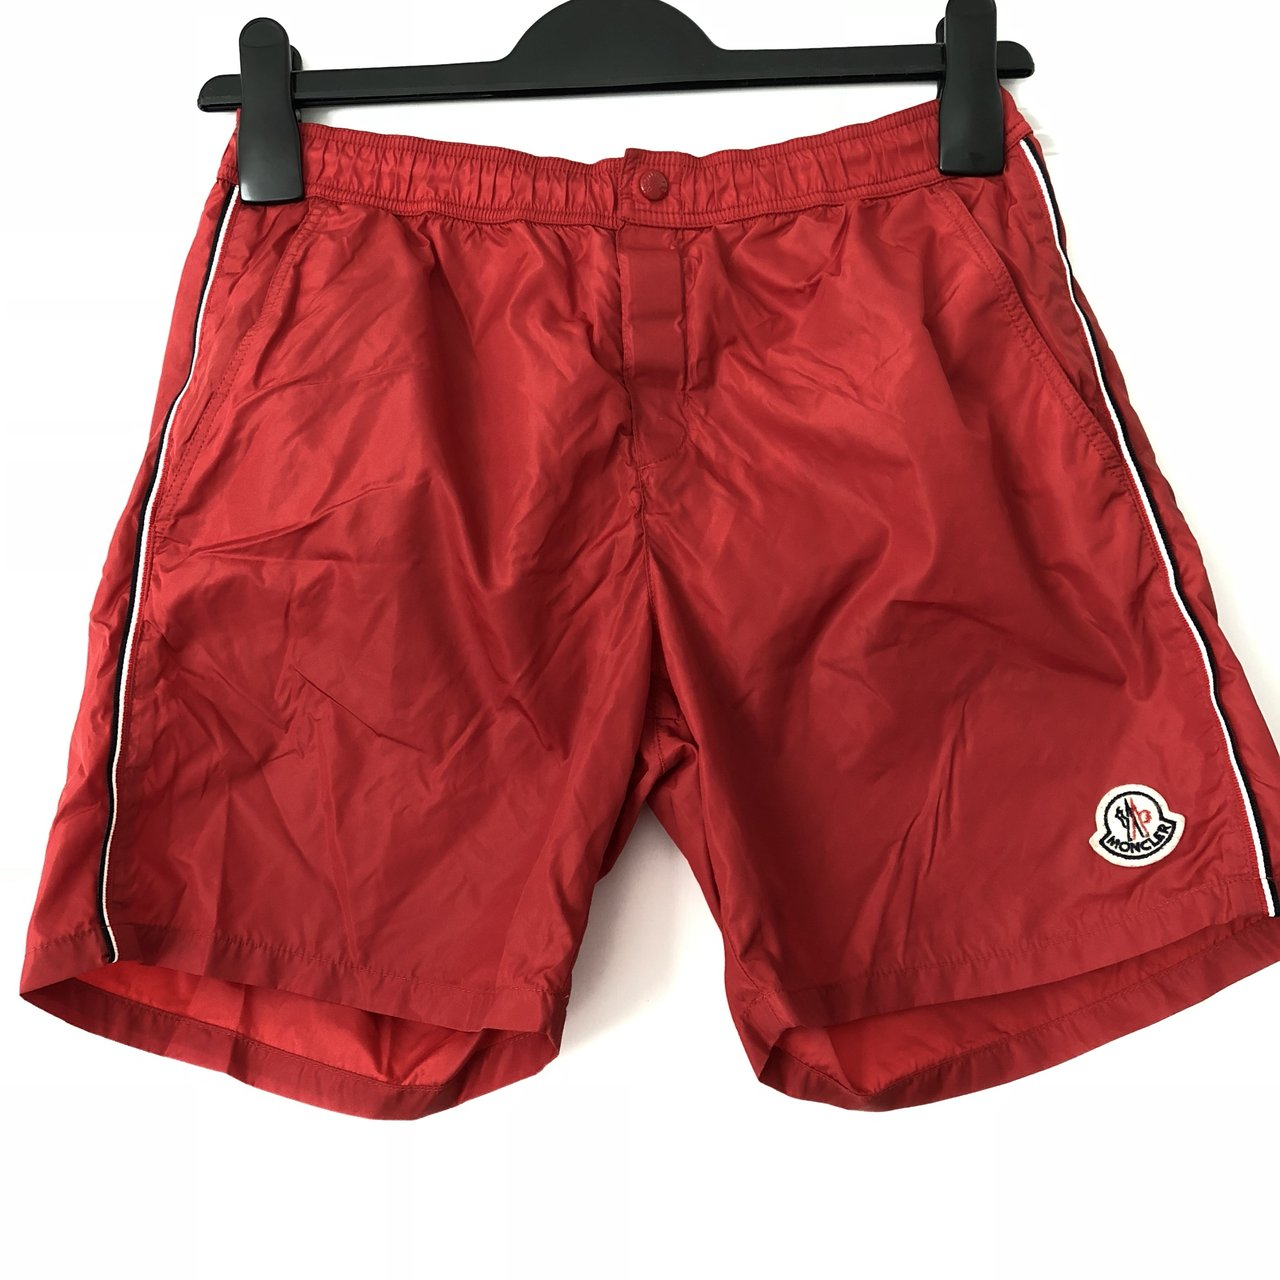 40eeb2ca0 Moncler Kids Swim Shorts. Colour - Red. Age 14. Very good - Depop